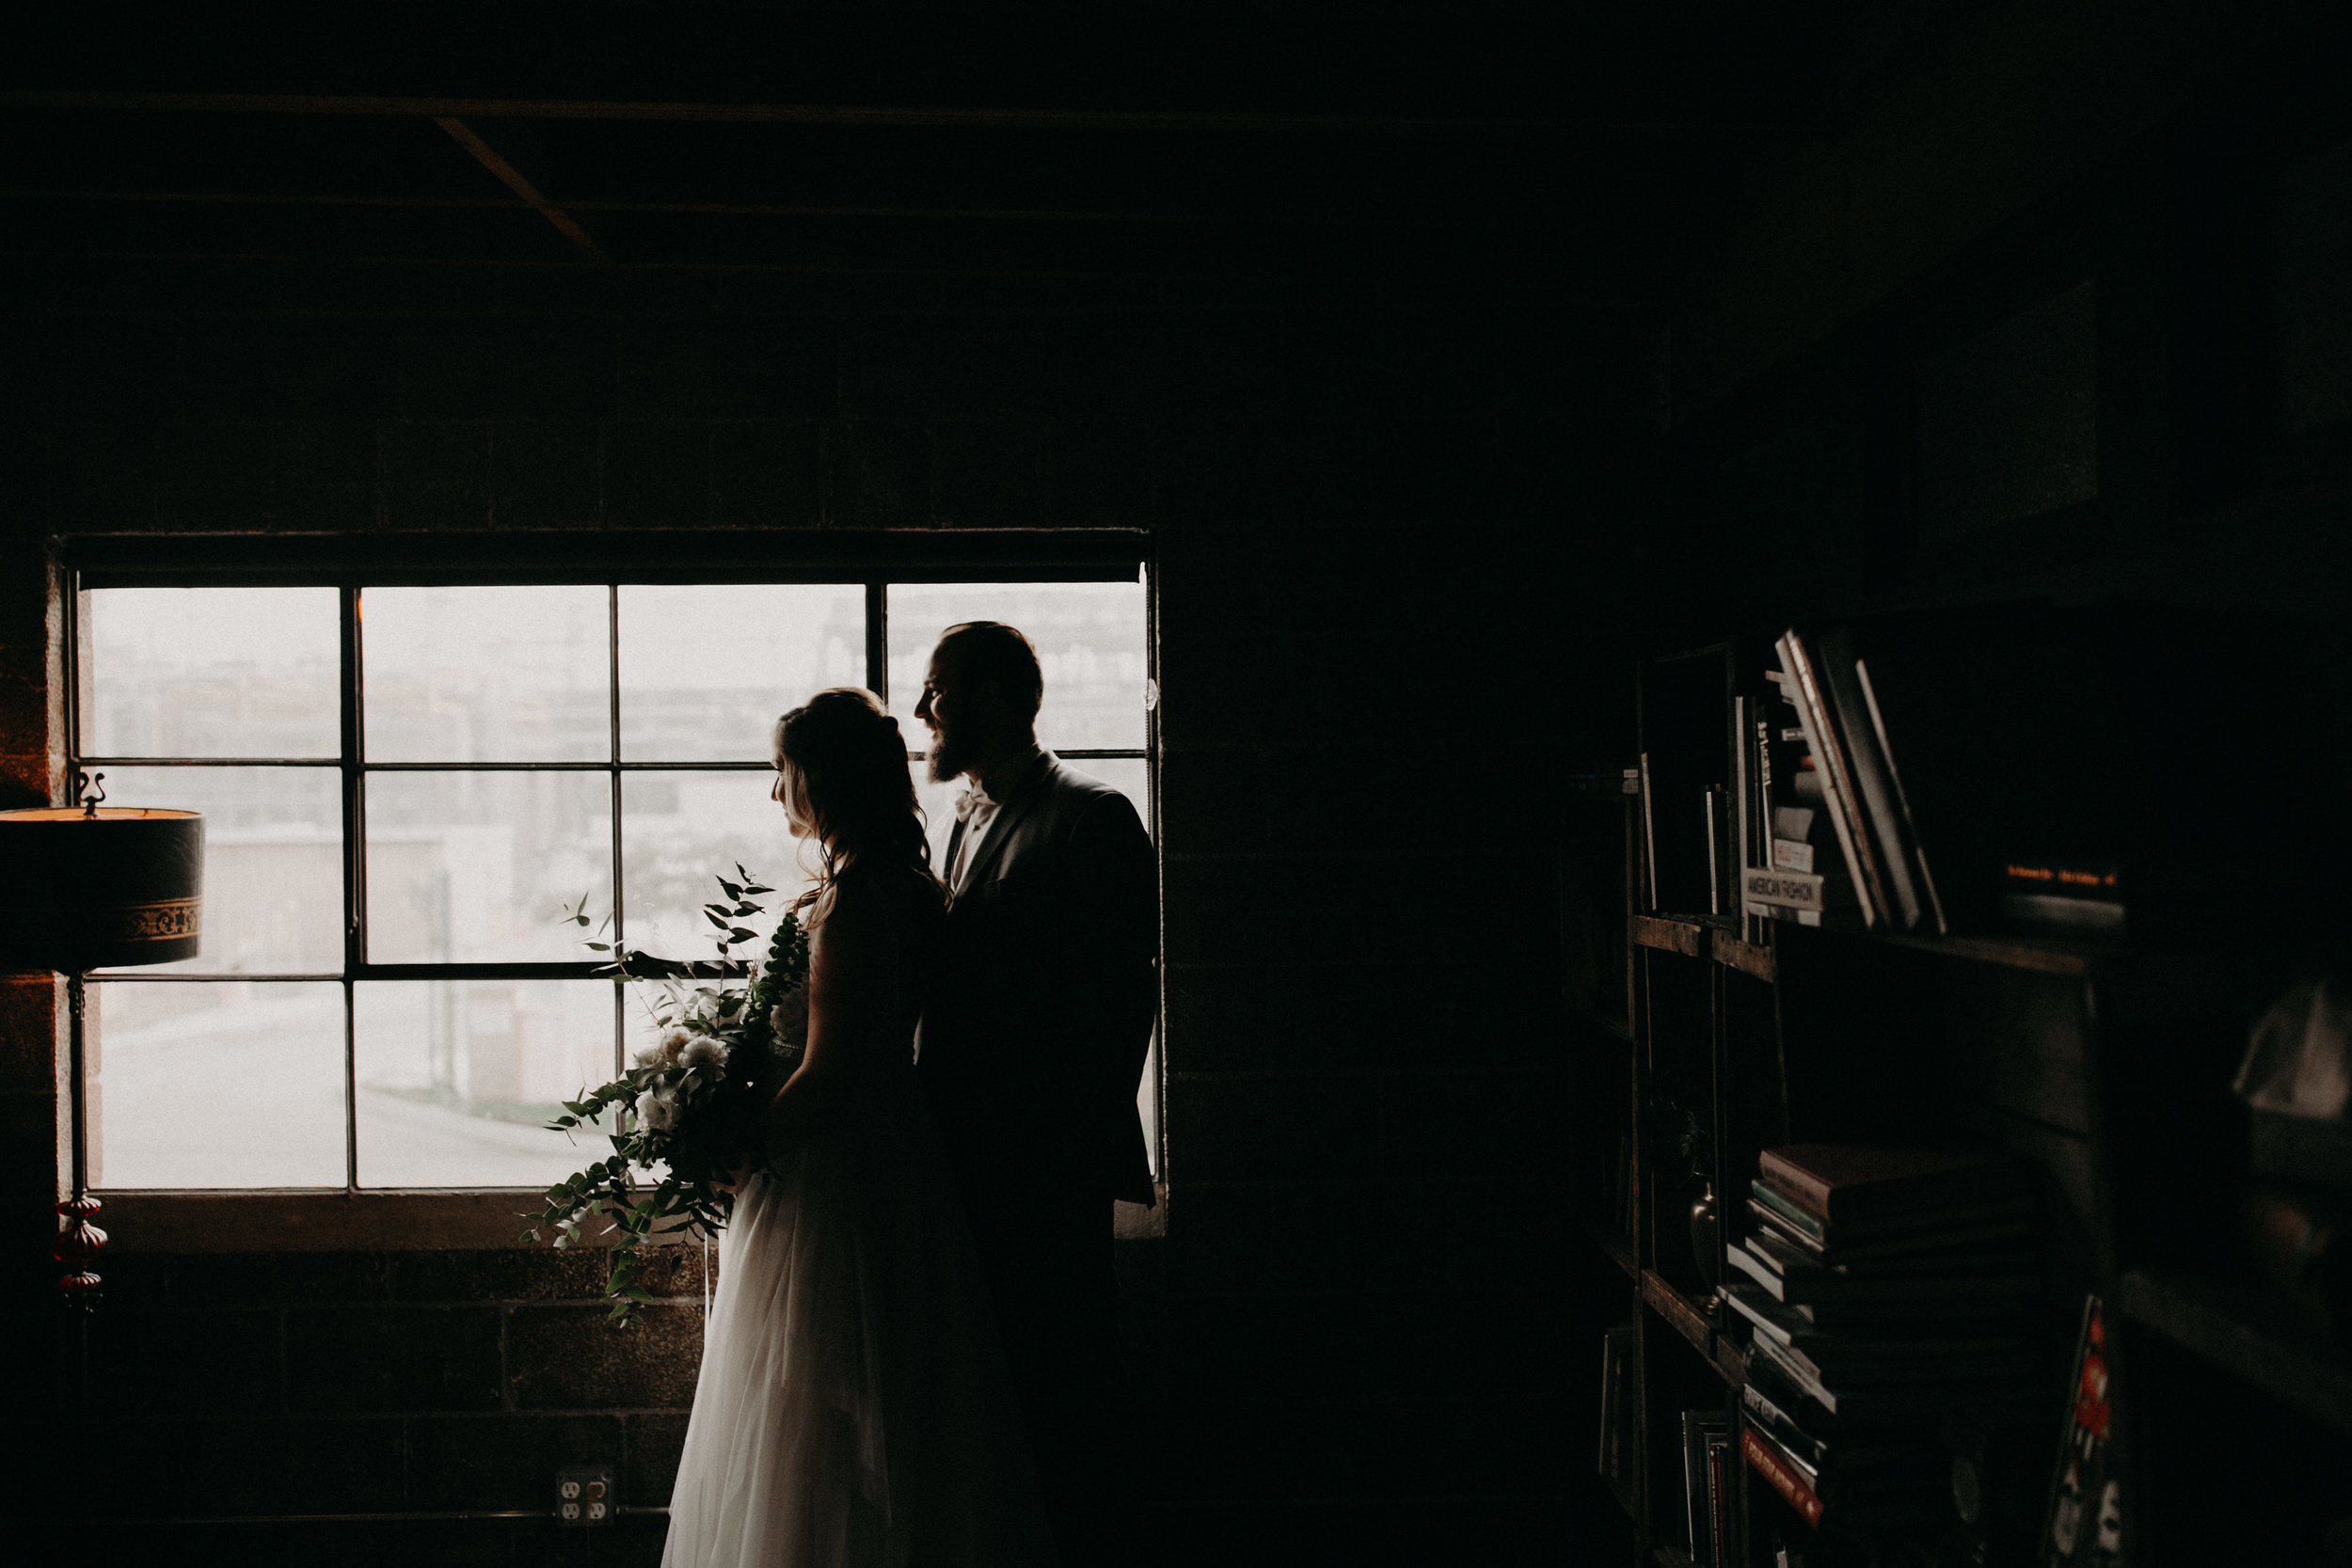 Smoky Hollow Studios Wedding Anne & Lewis Emily Magers Photography-375.jpg